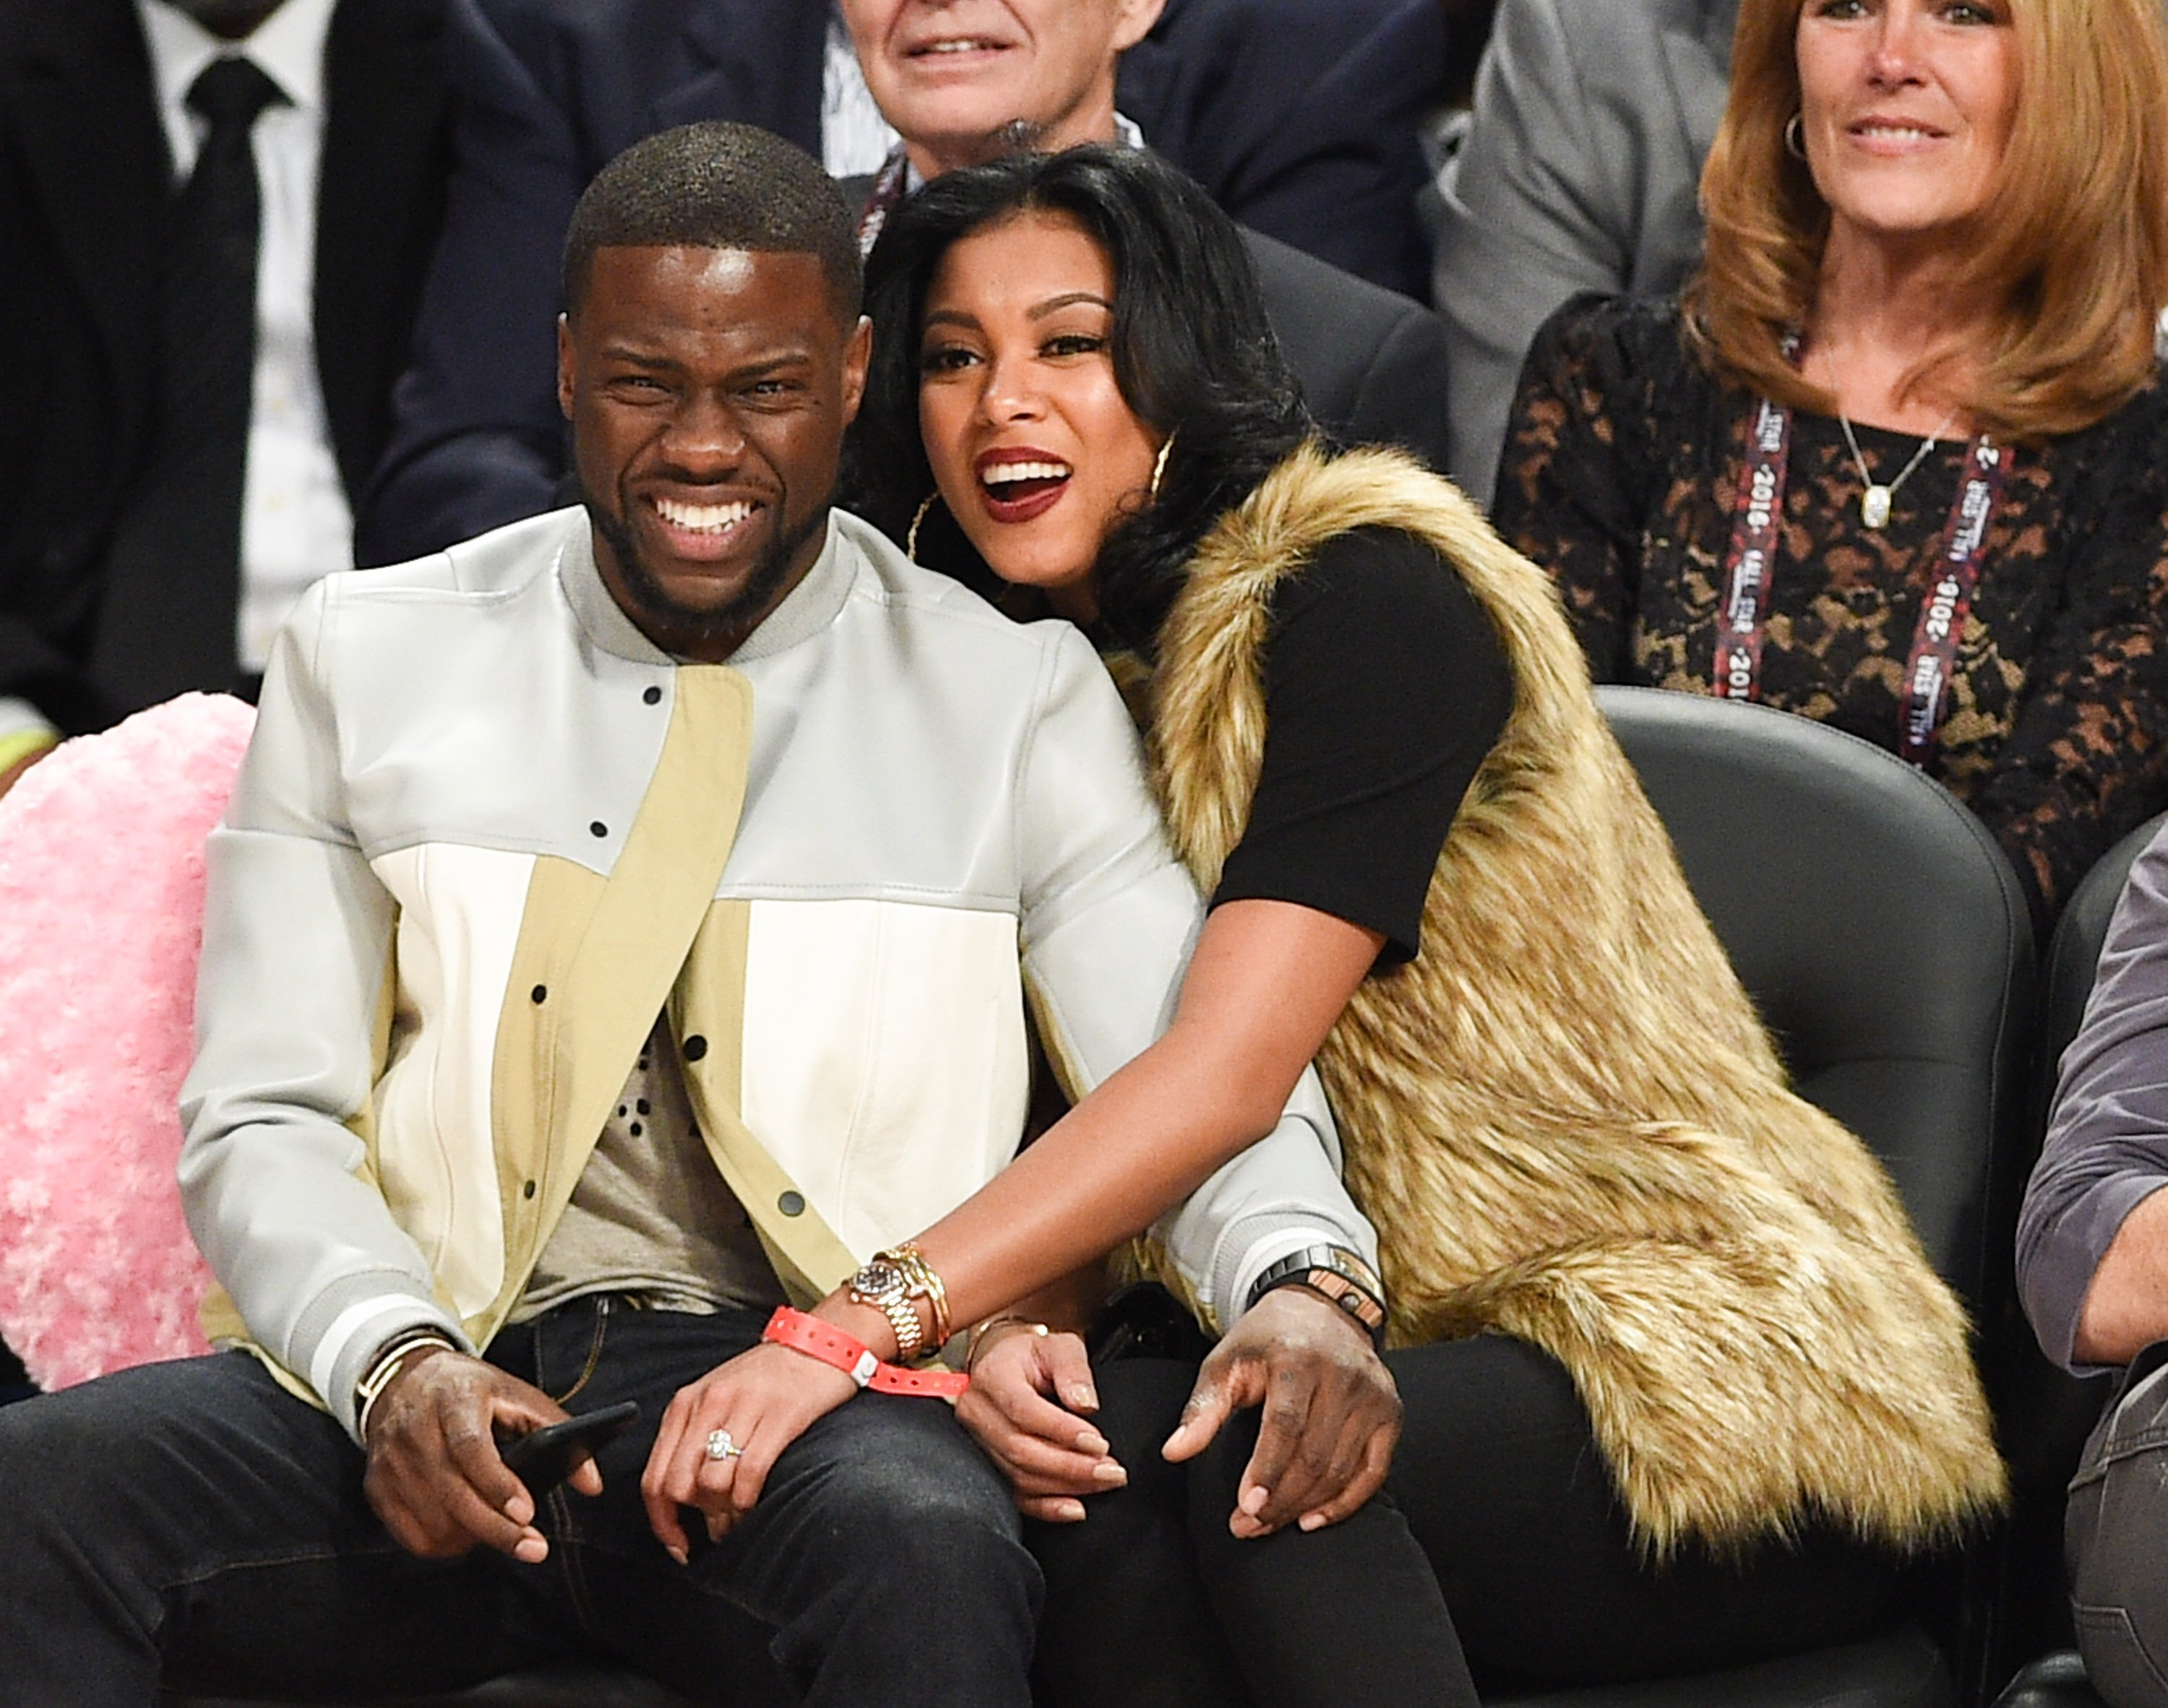 Actor Kevin Hart and Eniko Parrish attend the 2016 NBA All-Star Game at Air Canada Centre on February 14, 2016| Photo: Getty images